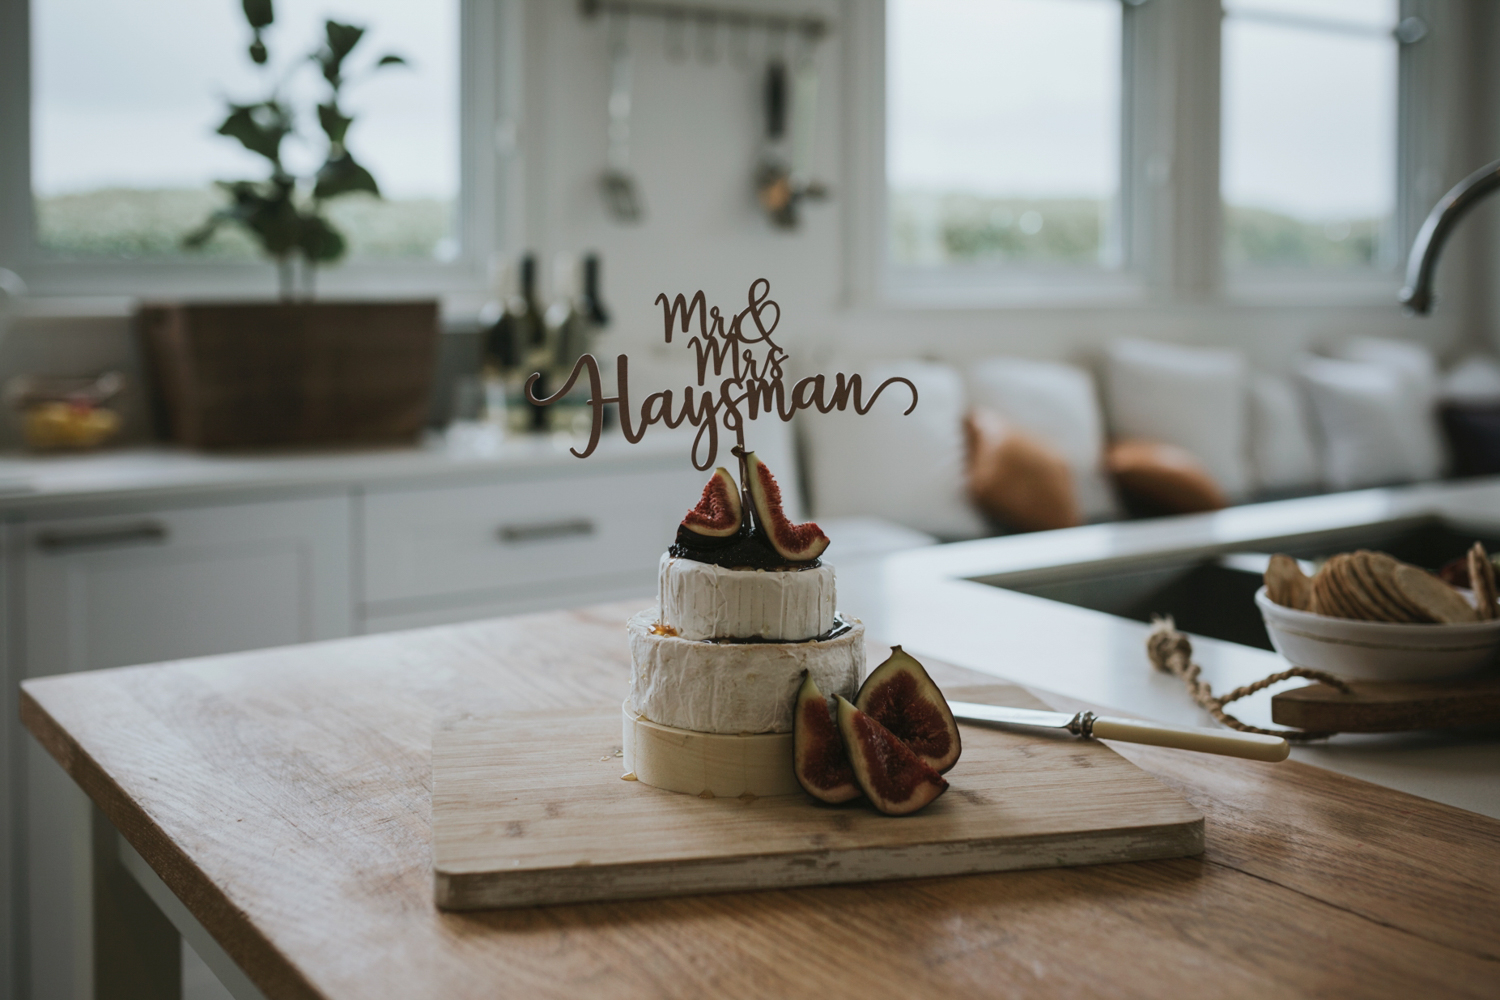 Unique wedding cake made of soft cheese and fresh figs with Mr & Mrs signage on top.